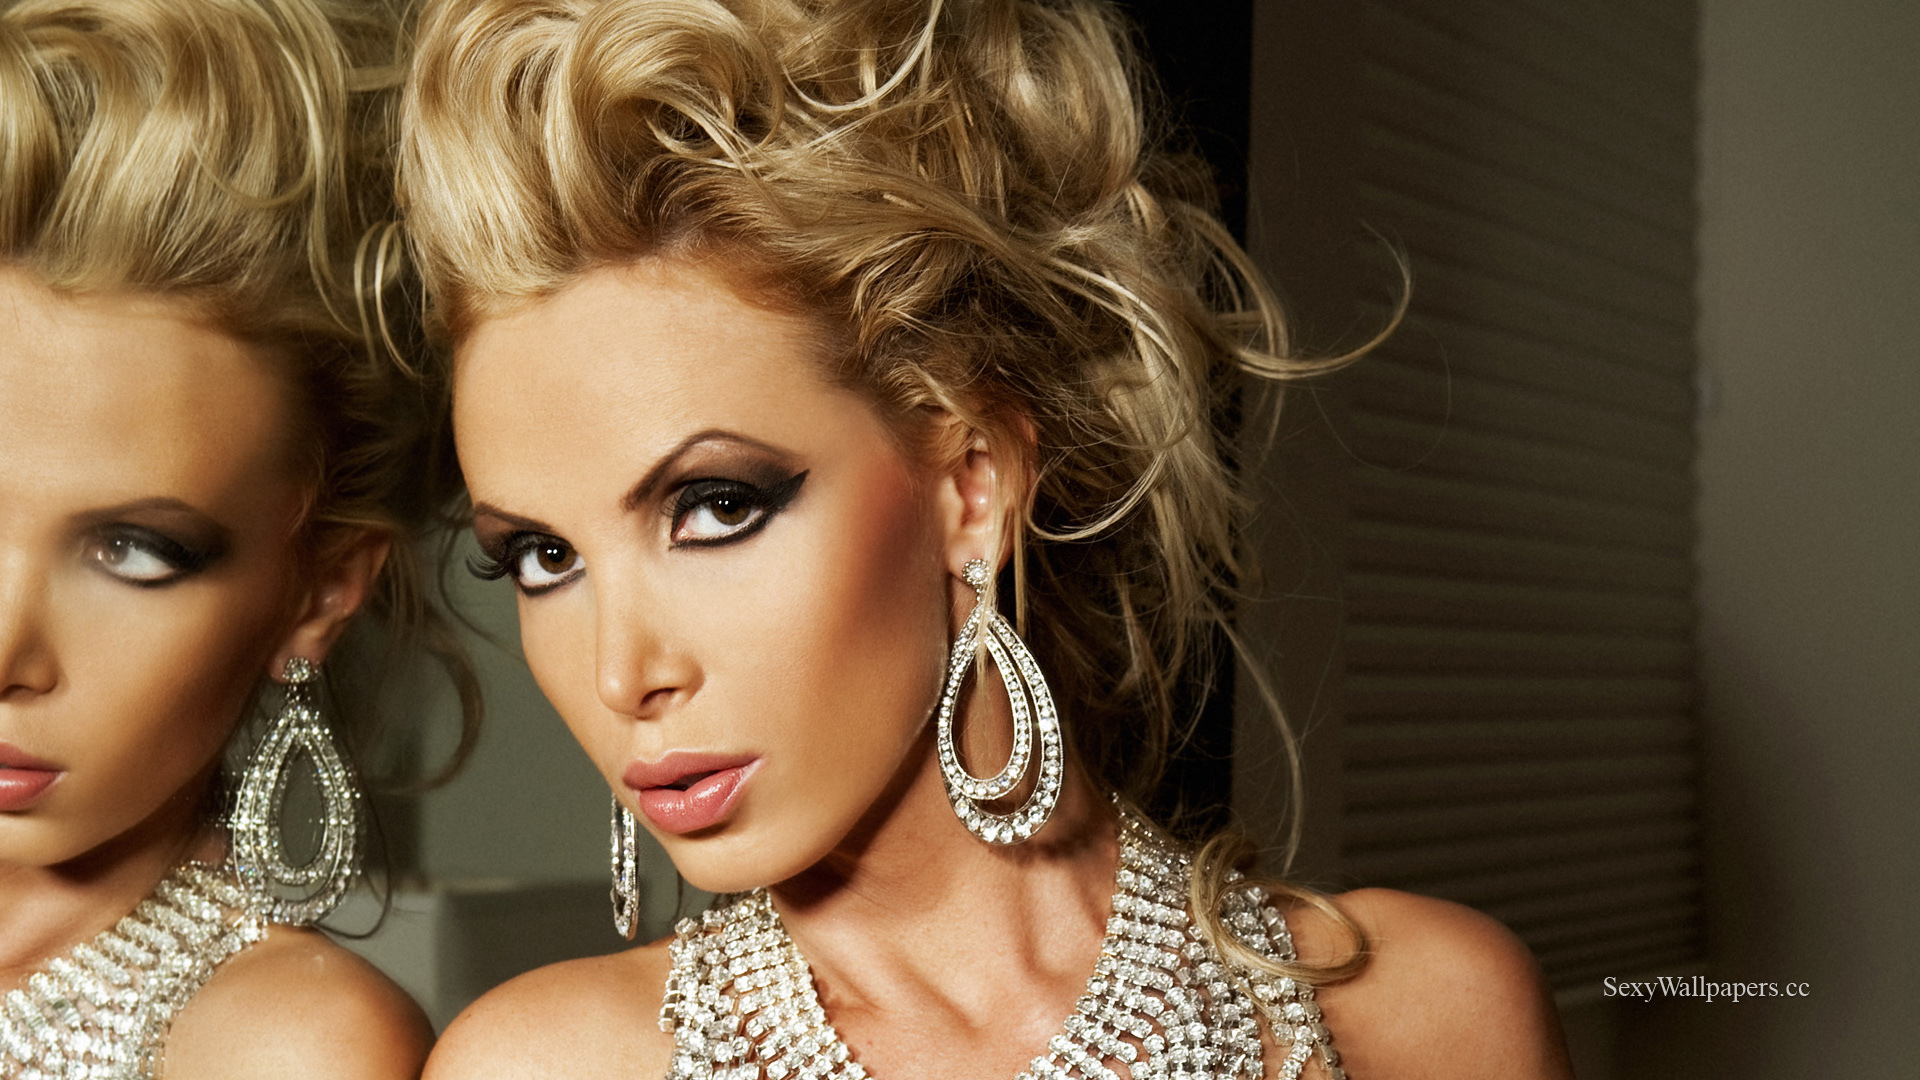 Nikki Benz HD Wallpaper